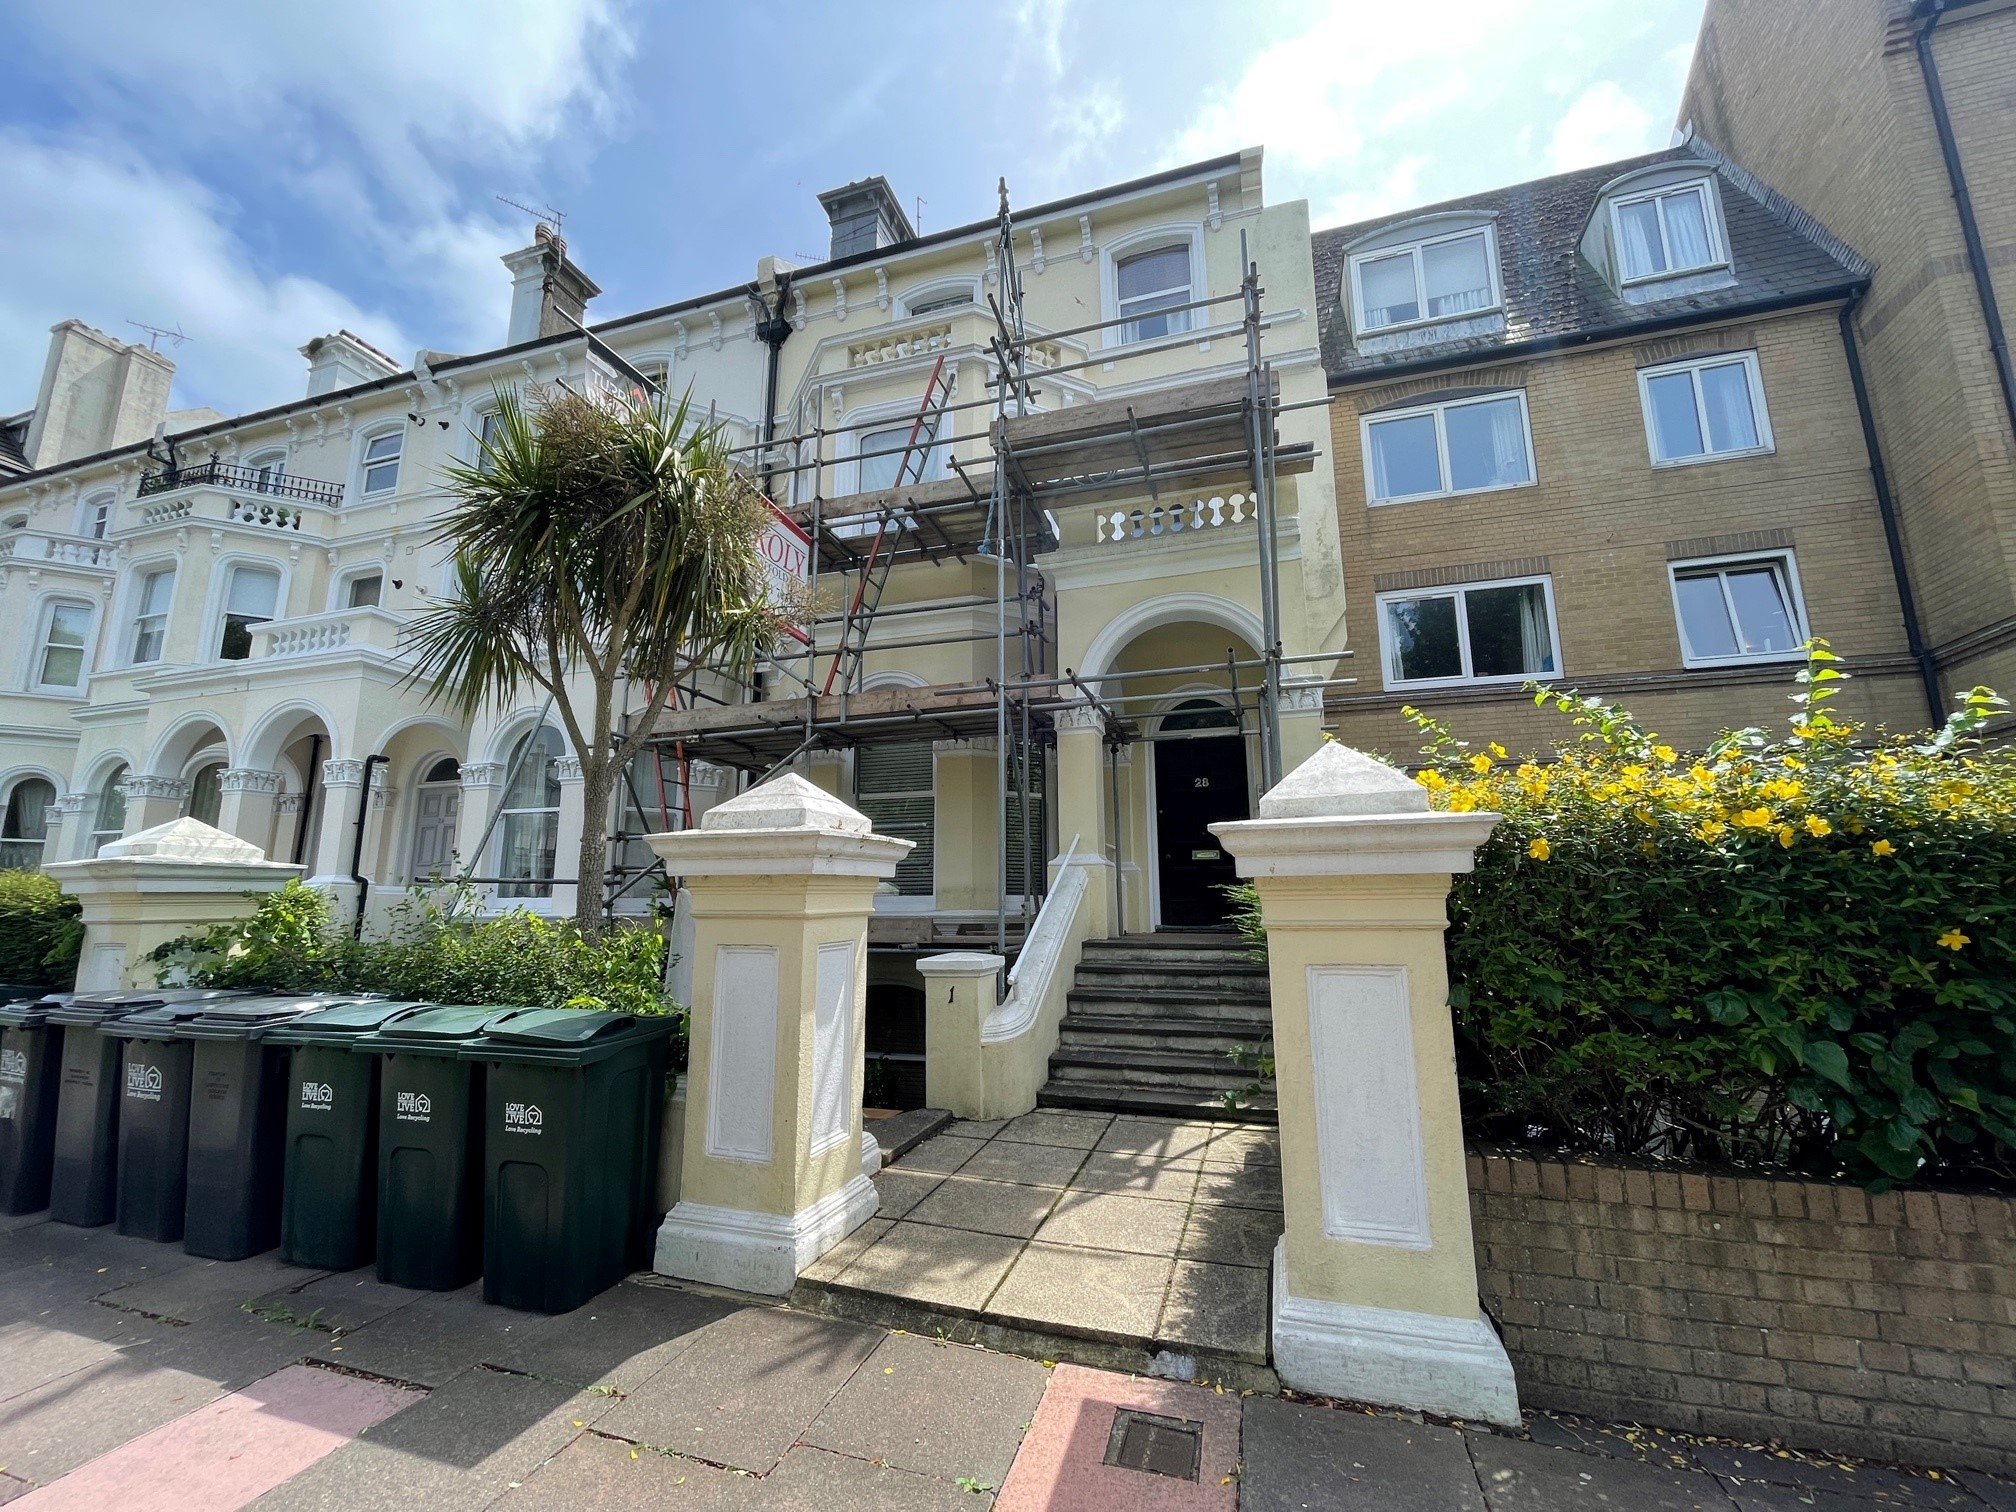 The Avenue, Eastbourne, East Sussex, BN21 3YD